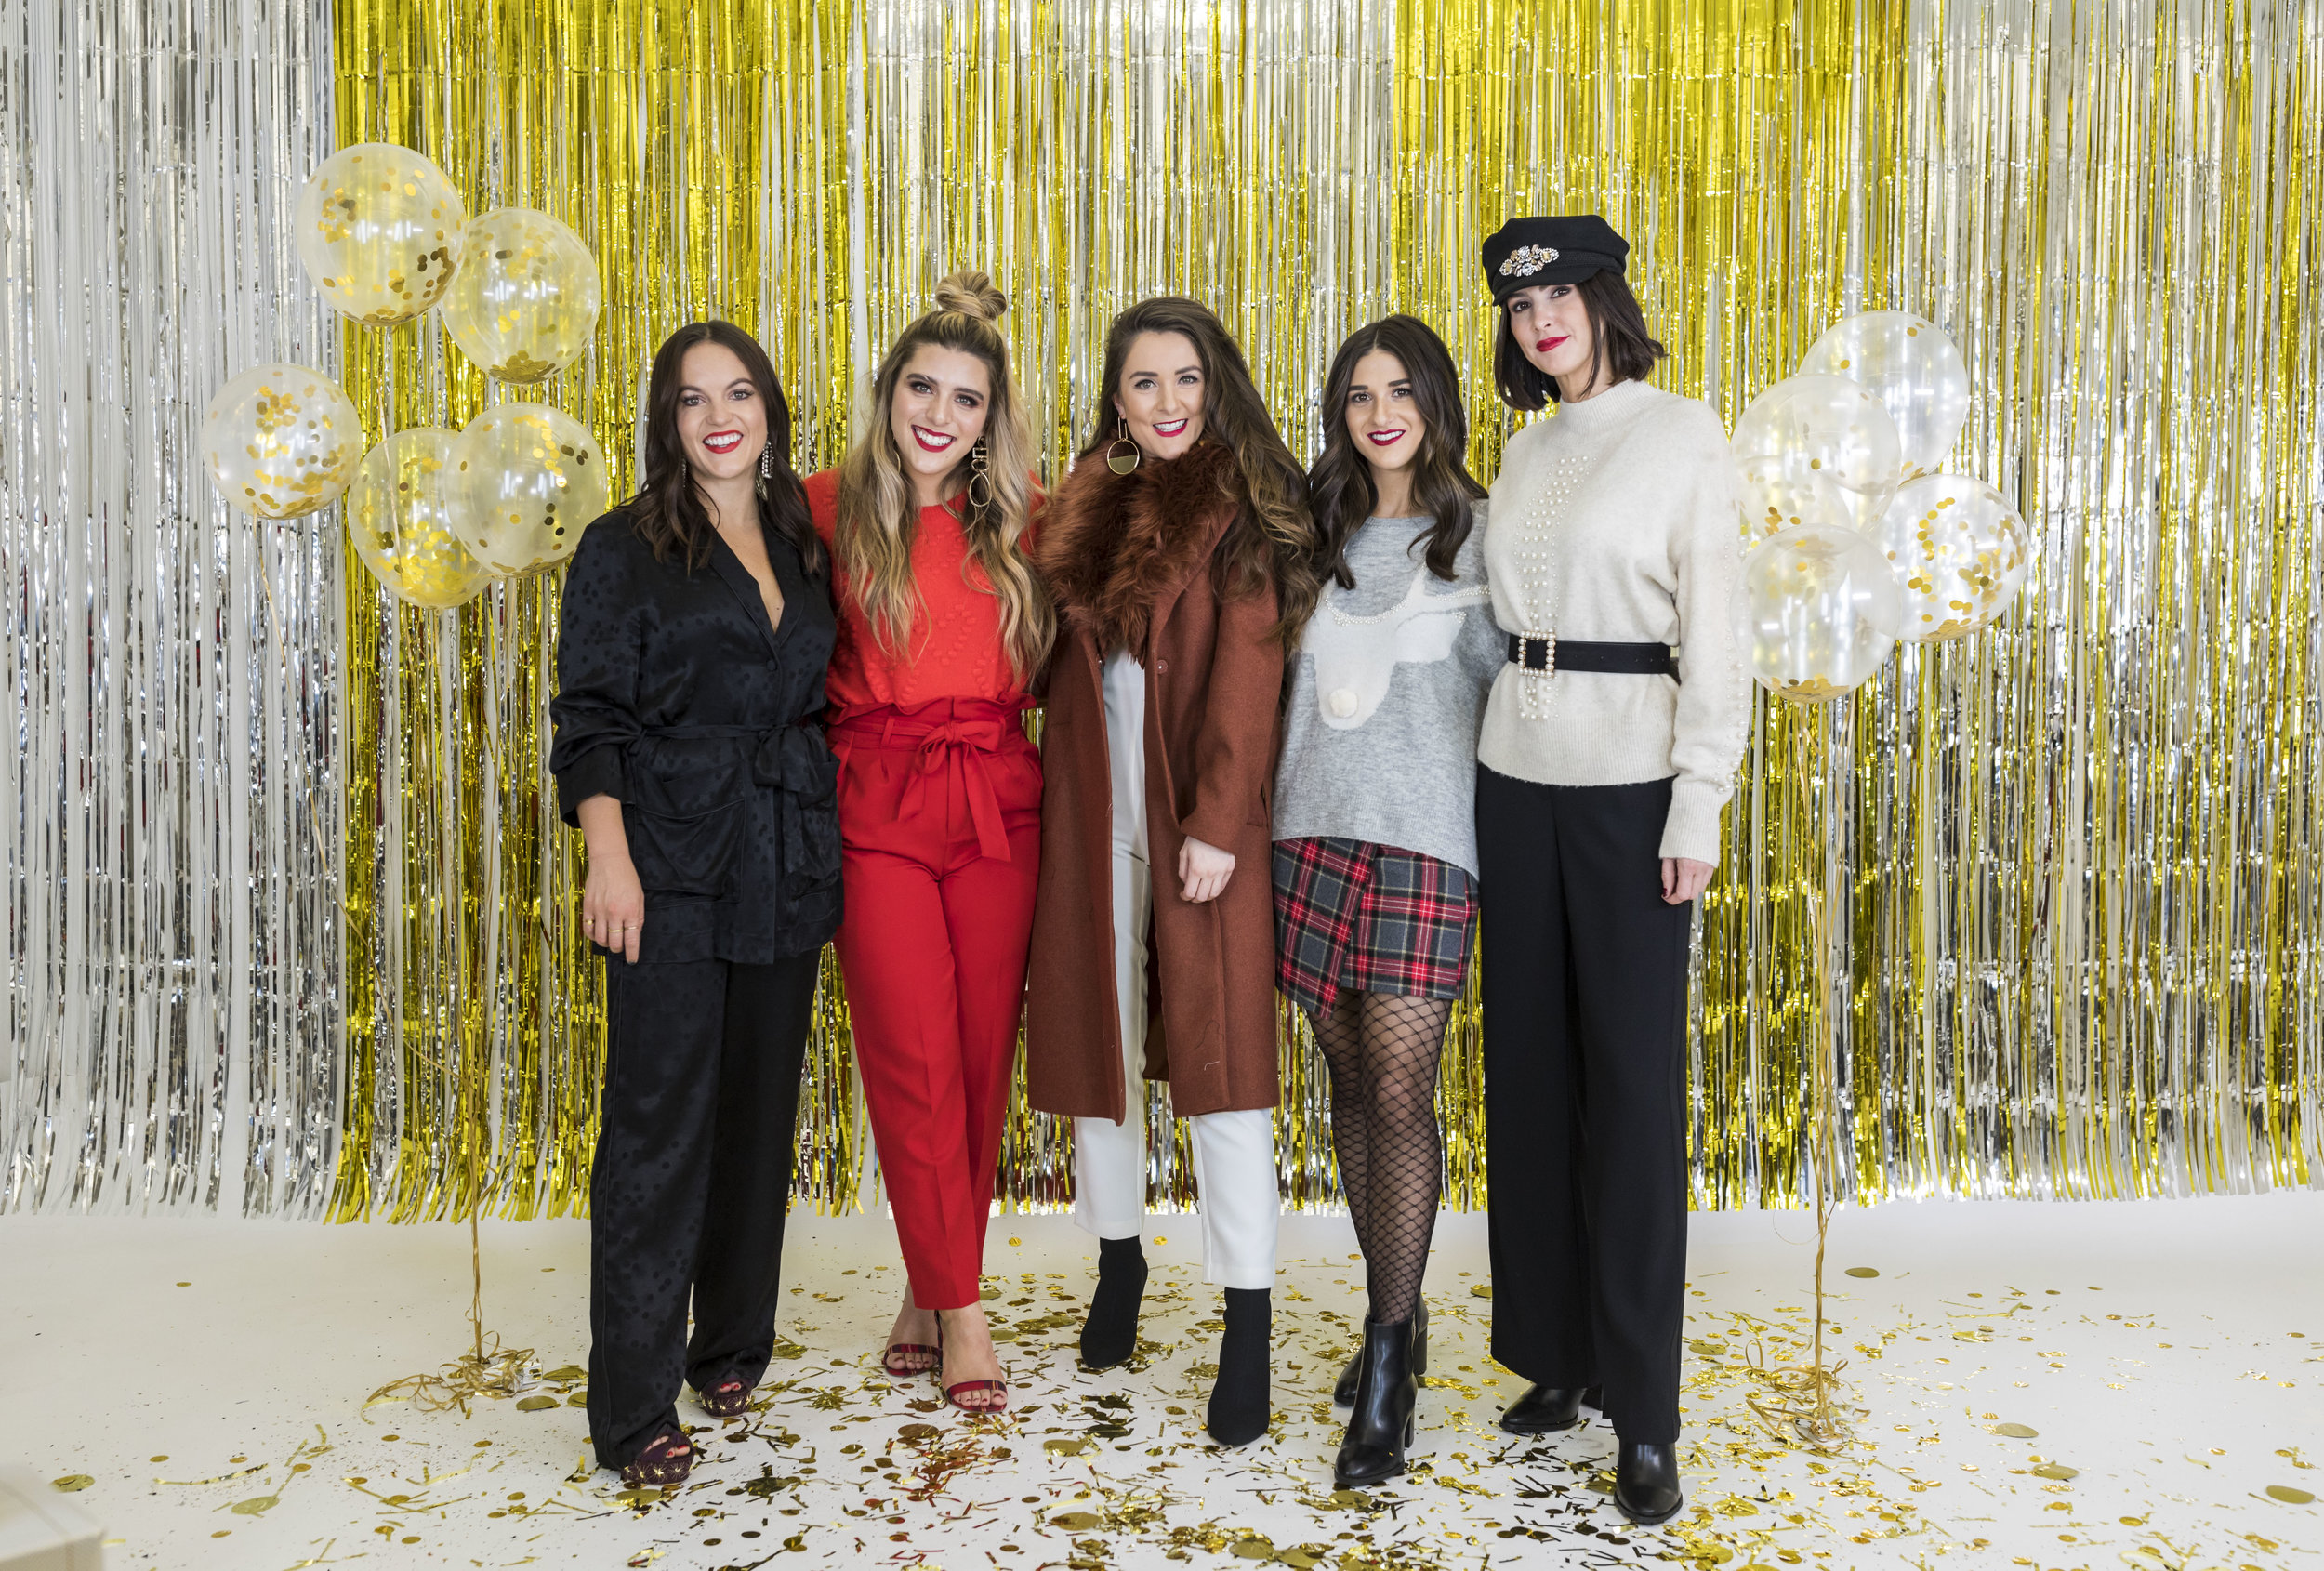 H&M Holiday Video Collab Esther Santer Fashion Blog NYC Street Style Blogger Outfit OOTD Trendy Confetti Streamers Balloons Presents Gift Wrap Shopping Wear Stylist Photoshoot Sweater Plaid Skirt DryBar Hairstyle Friends Girl Smile Jewelry Accessories.jpg